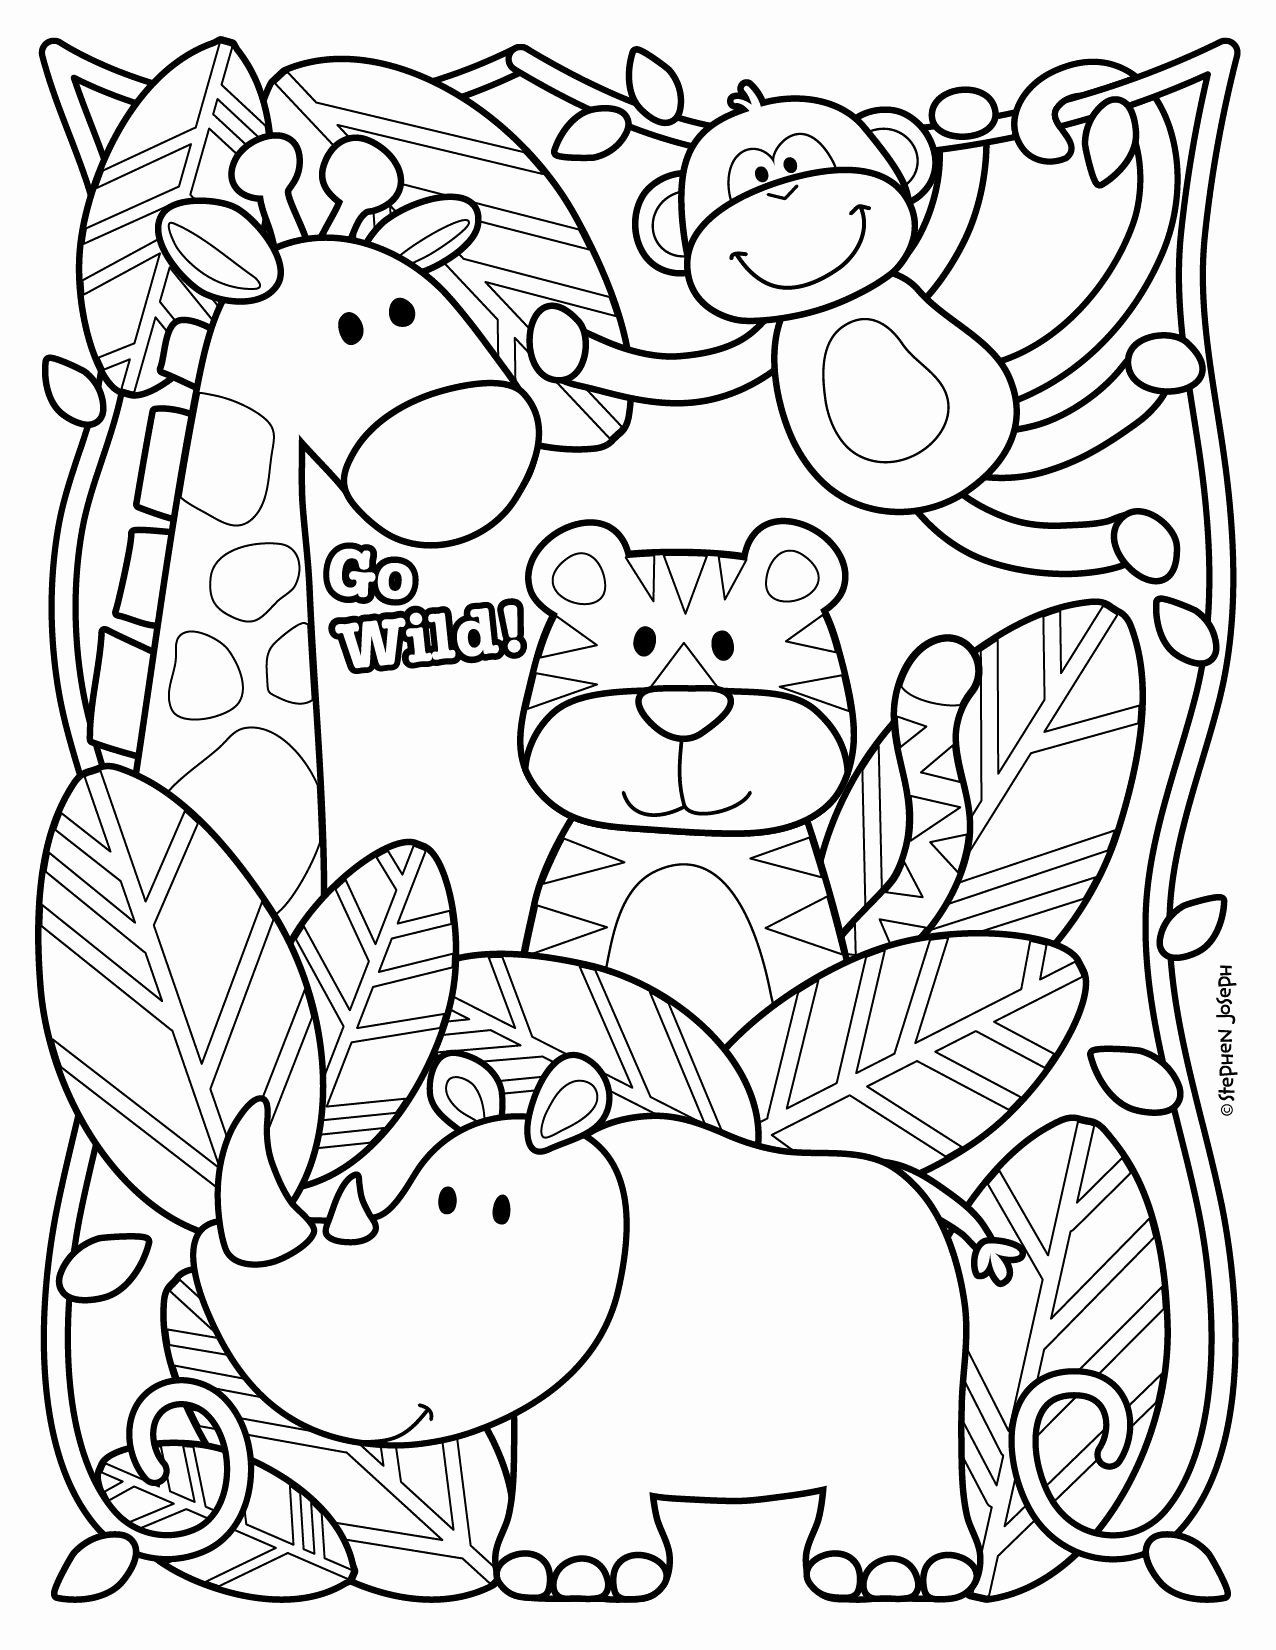 zoo animal coloring free printable zoo animals colouring pages just family fun animal zoo coloring